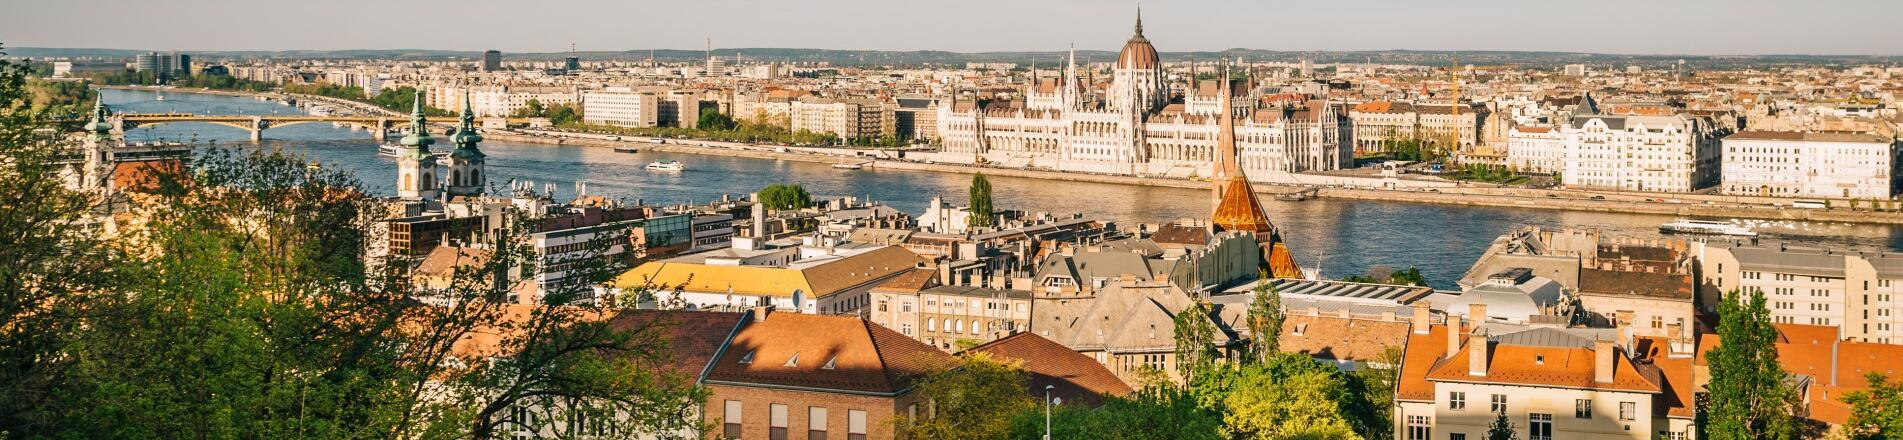 How to get to our hotels in the Buda Castle